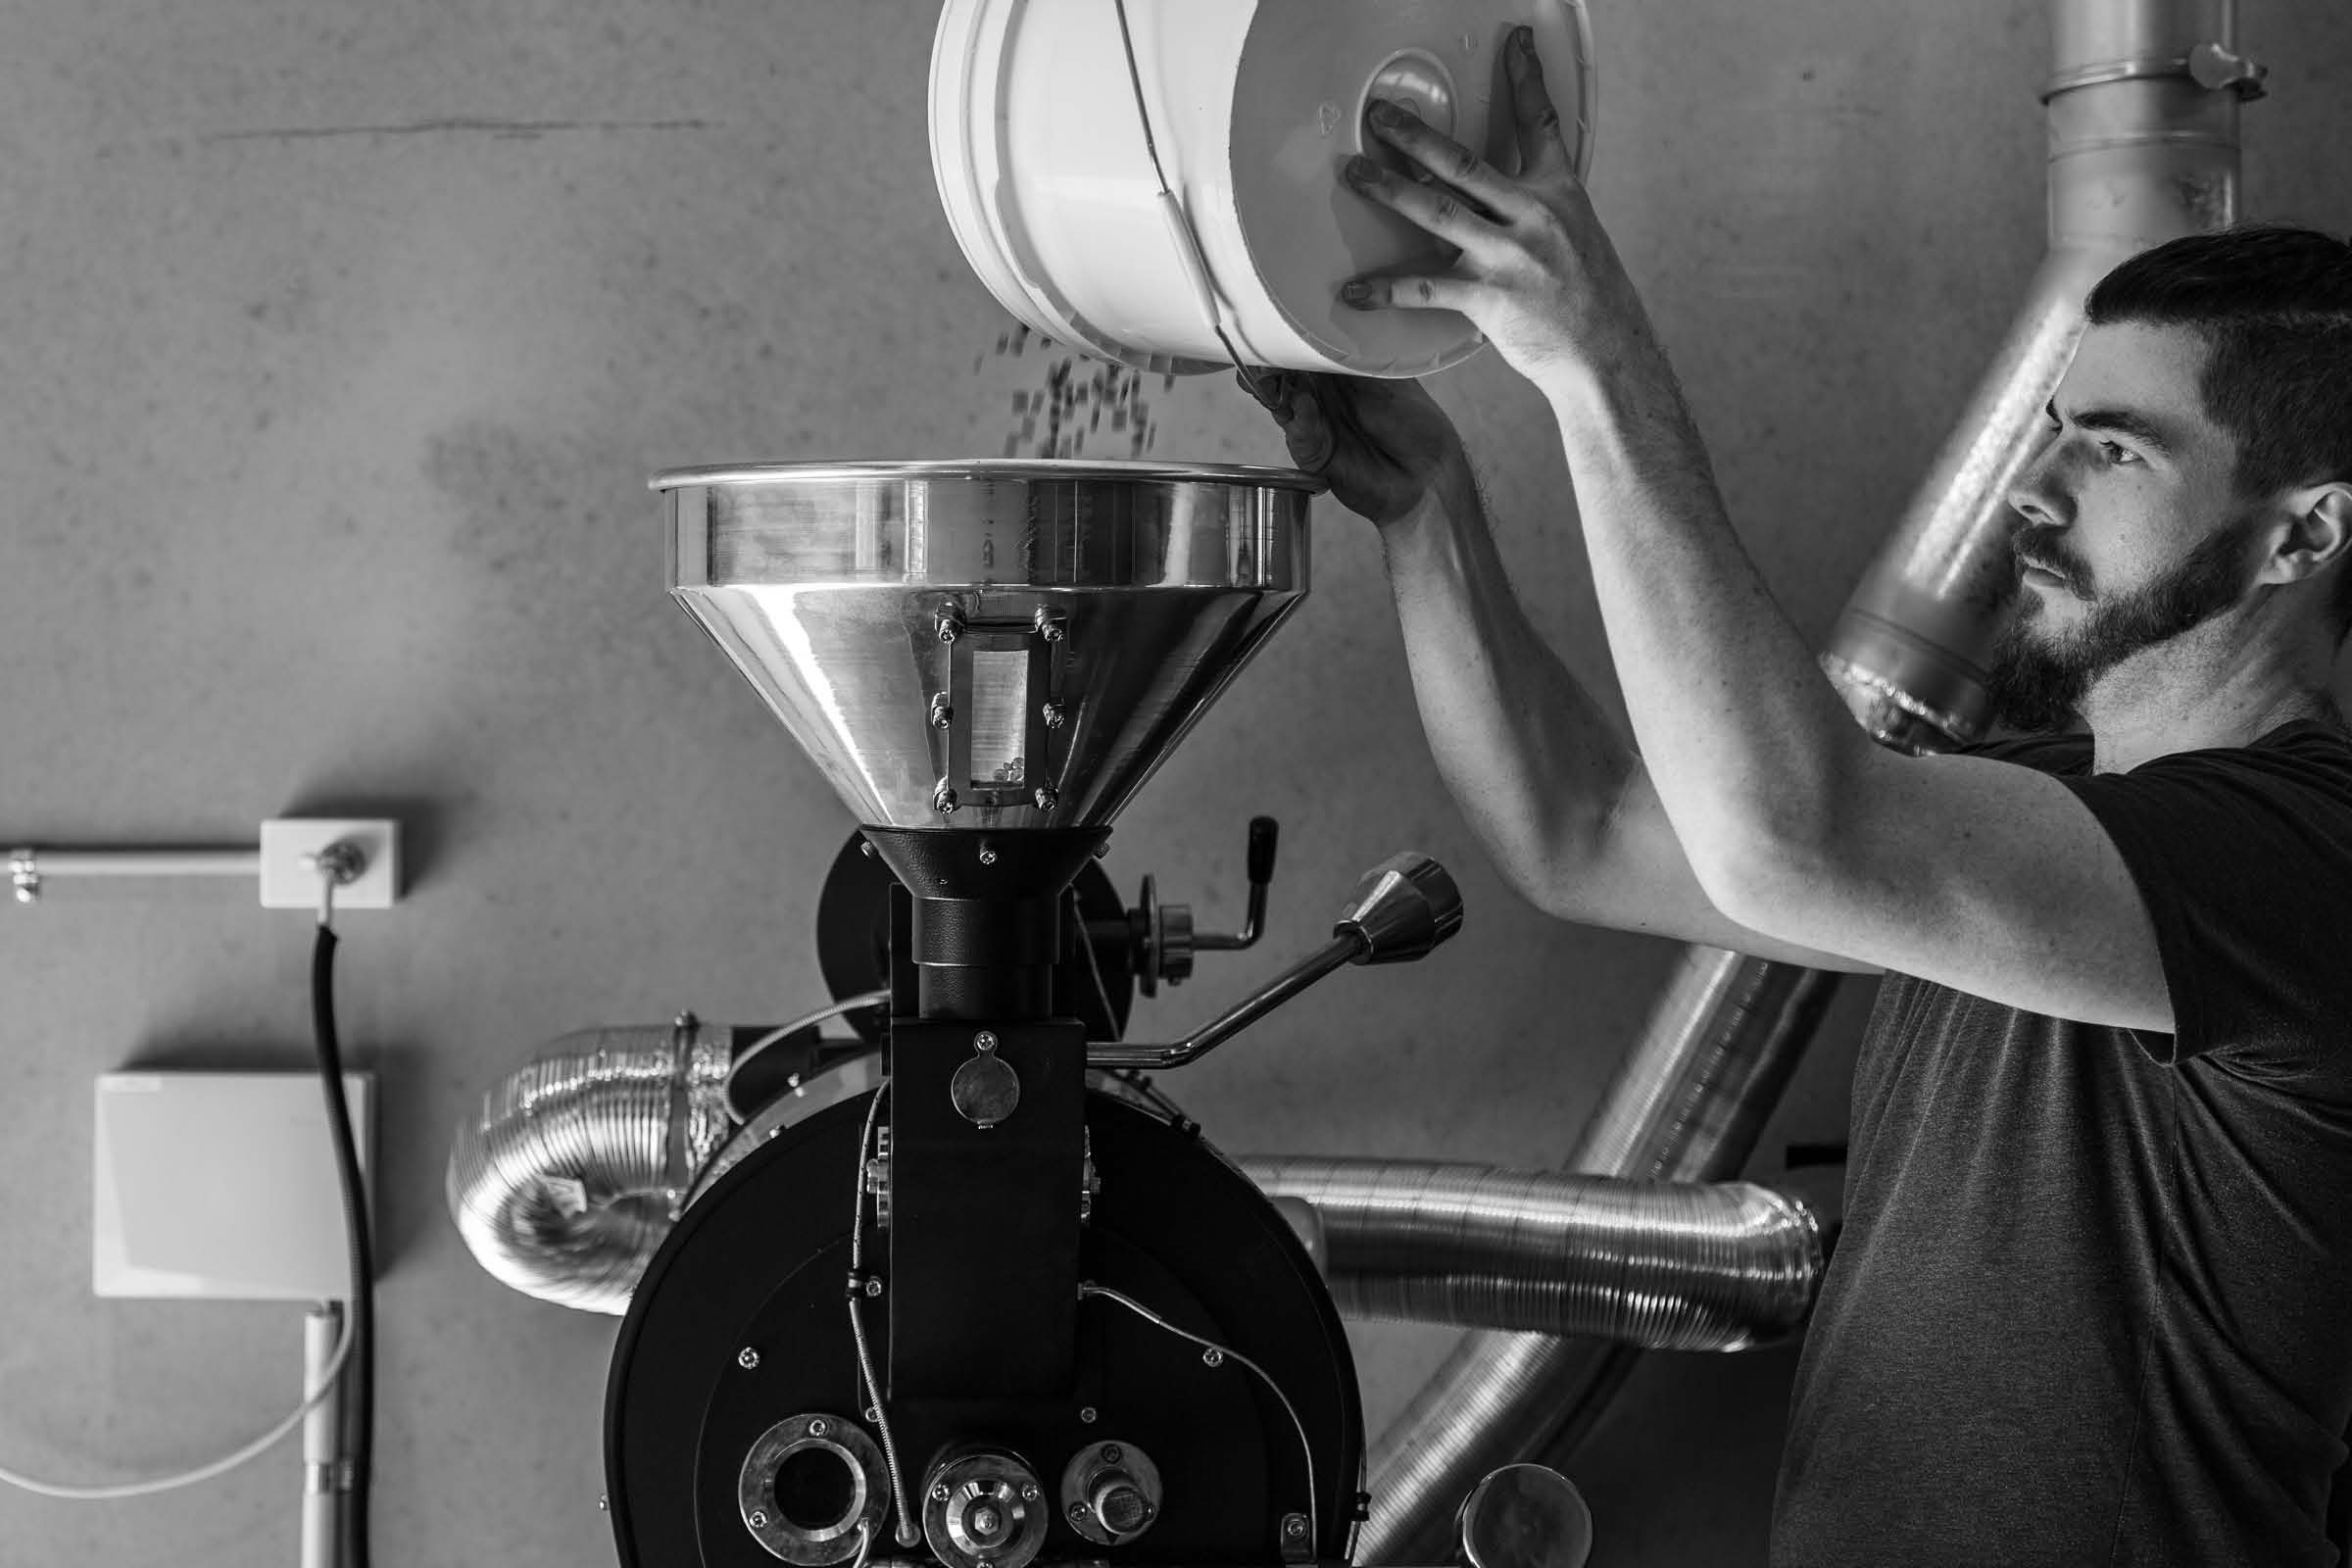 corporate photo of a man pouring coffee beans into the roaster.